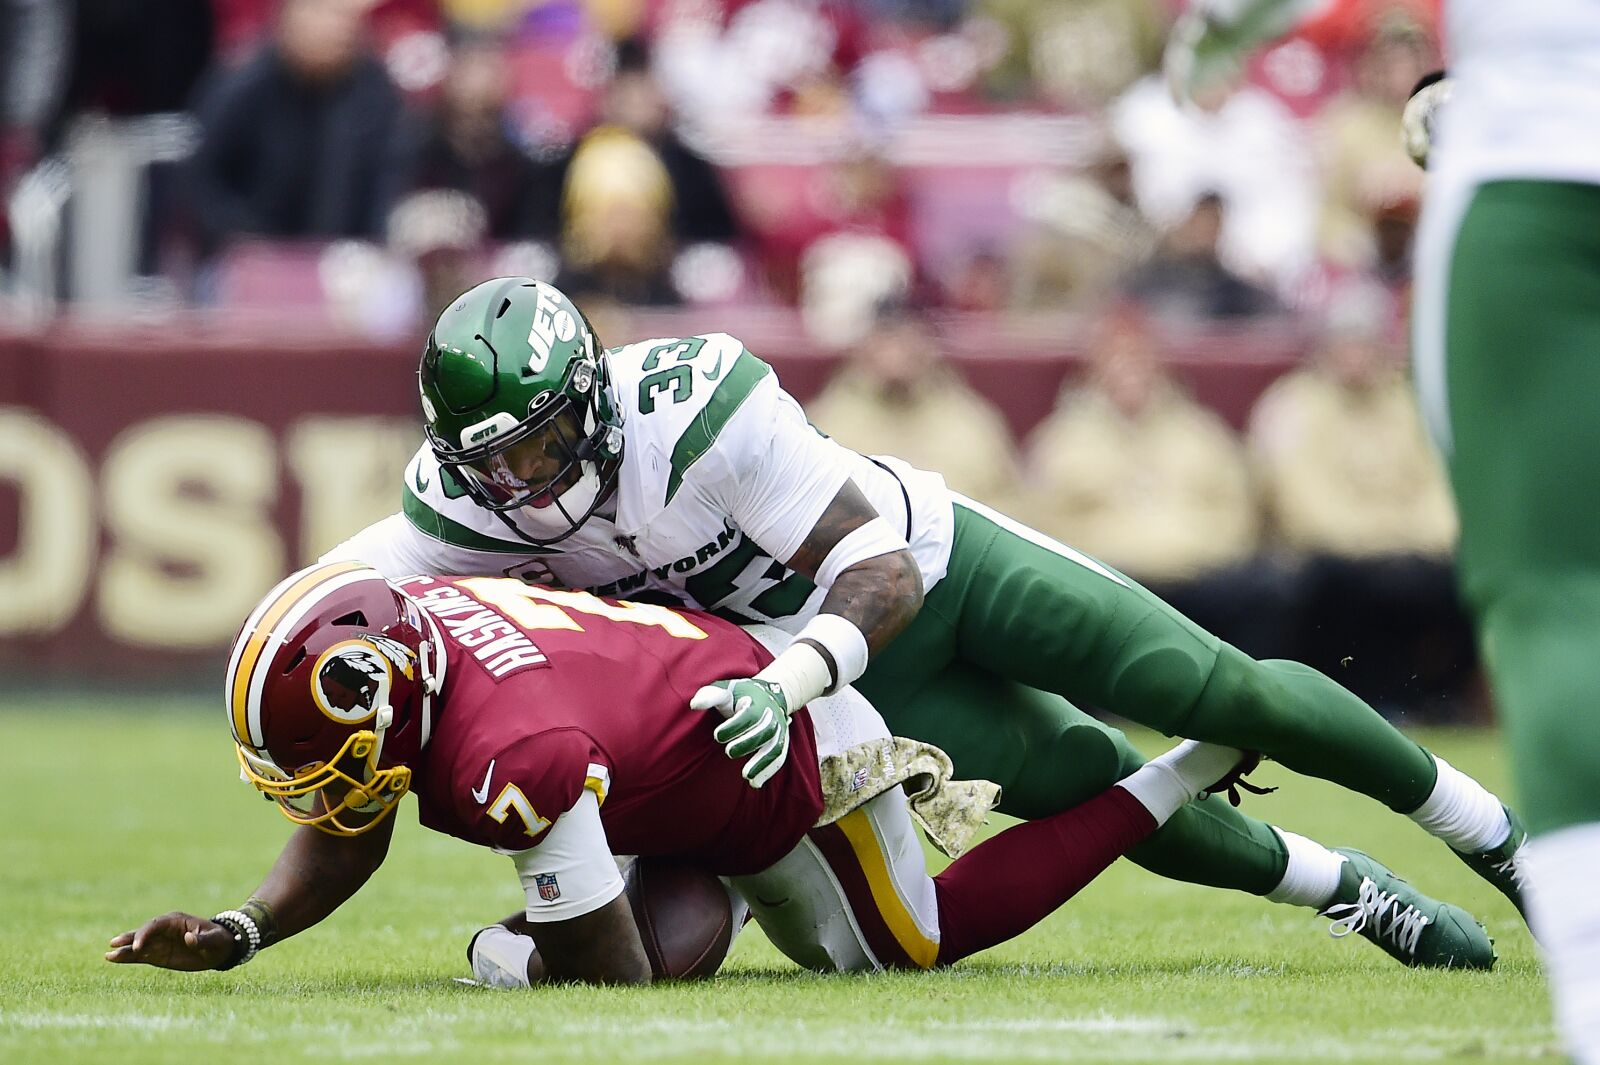 Redskins crushed by Jets in an embarrassing blowout